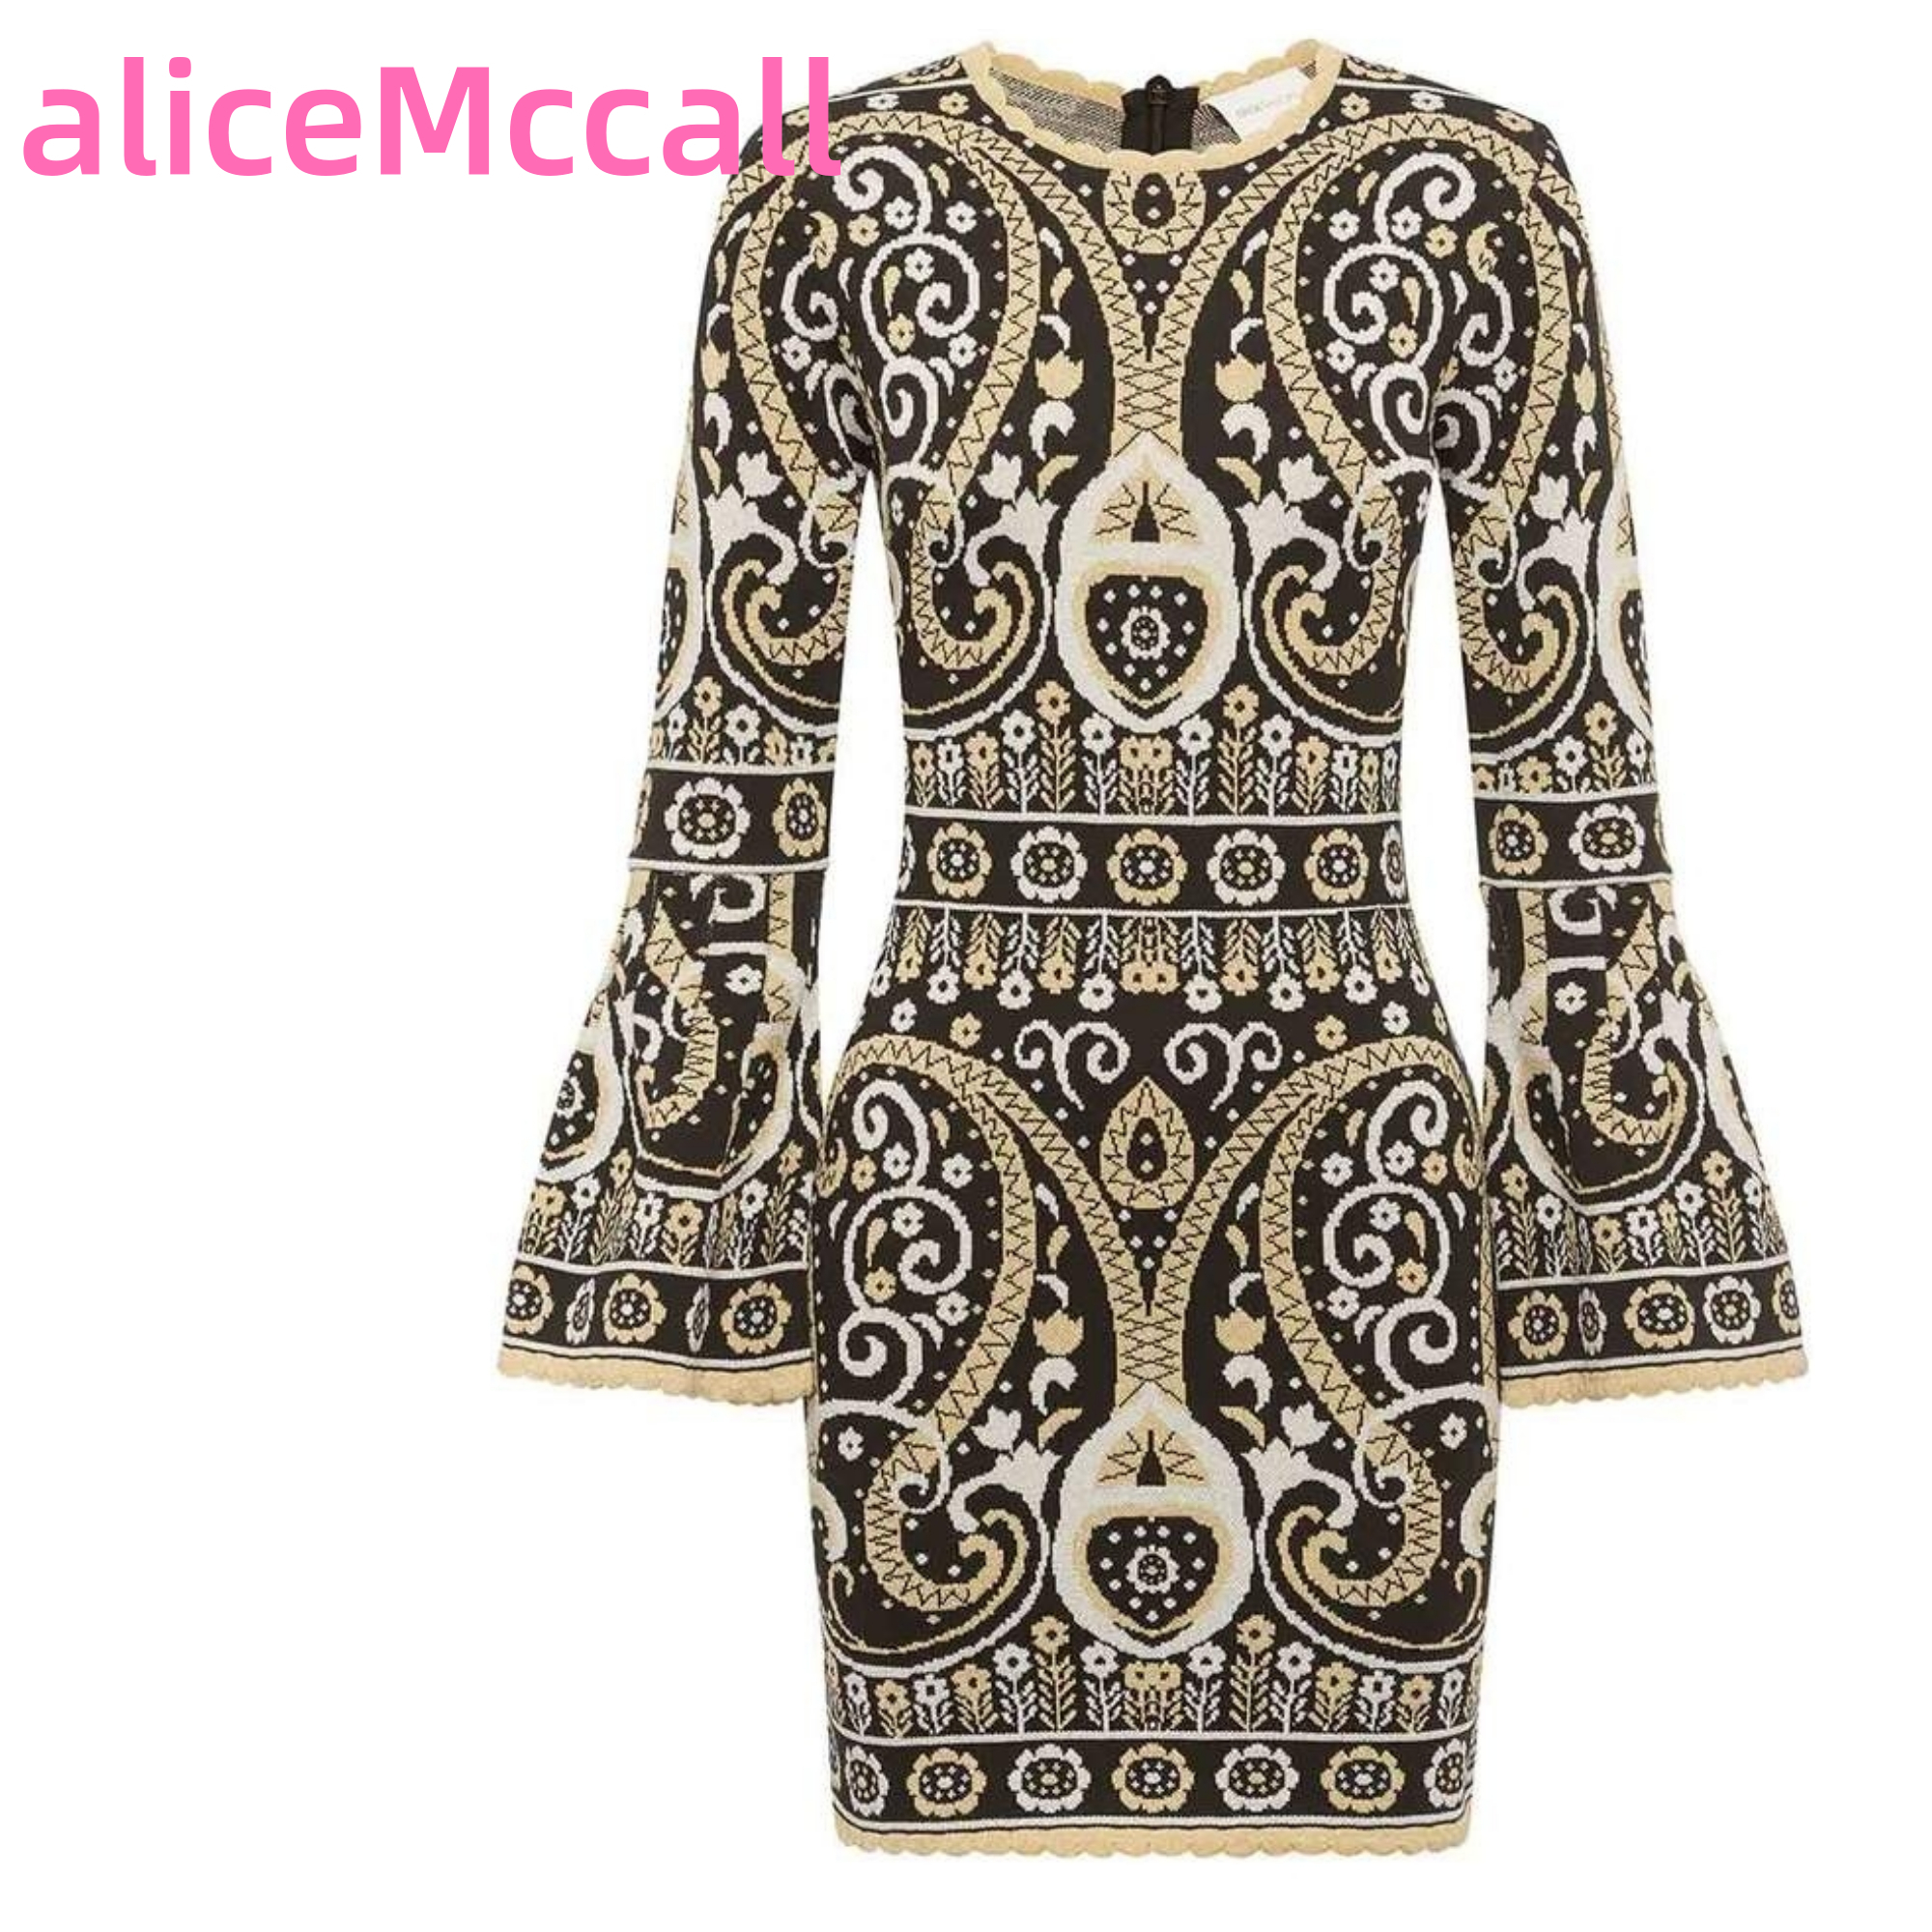 shop alice mccall clothing